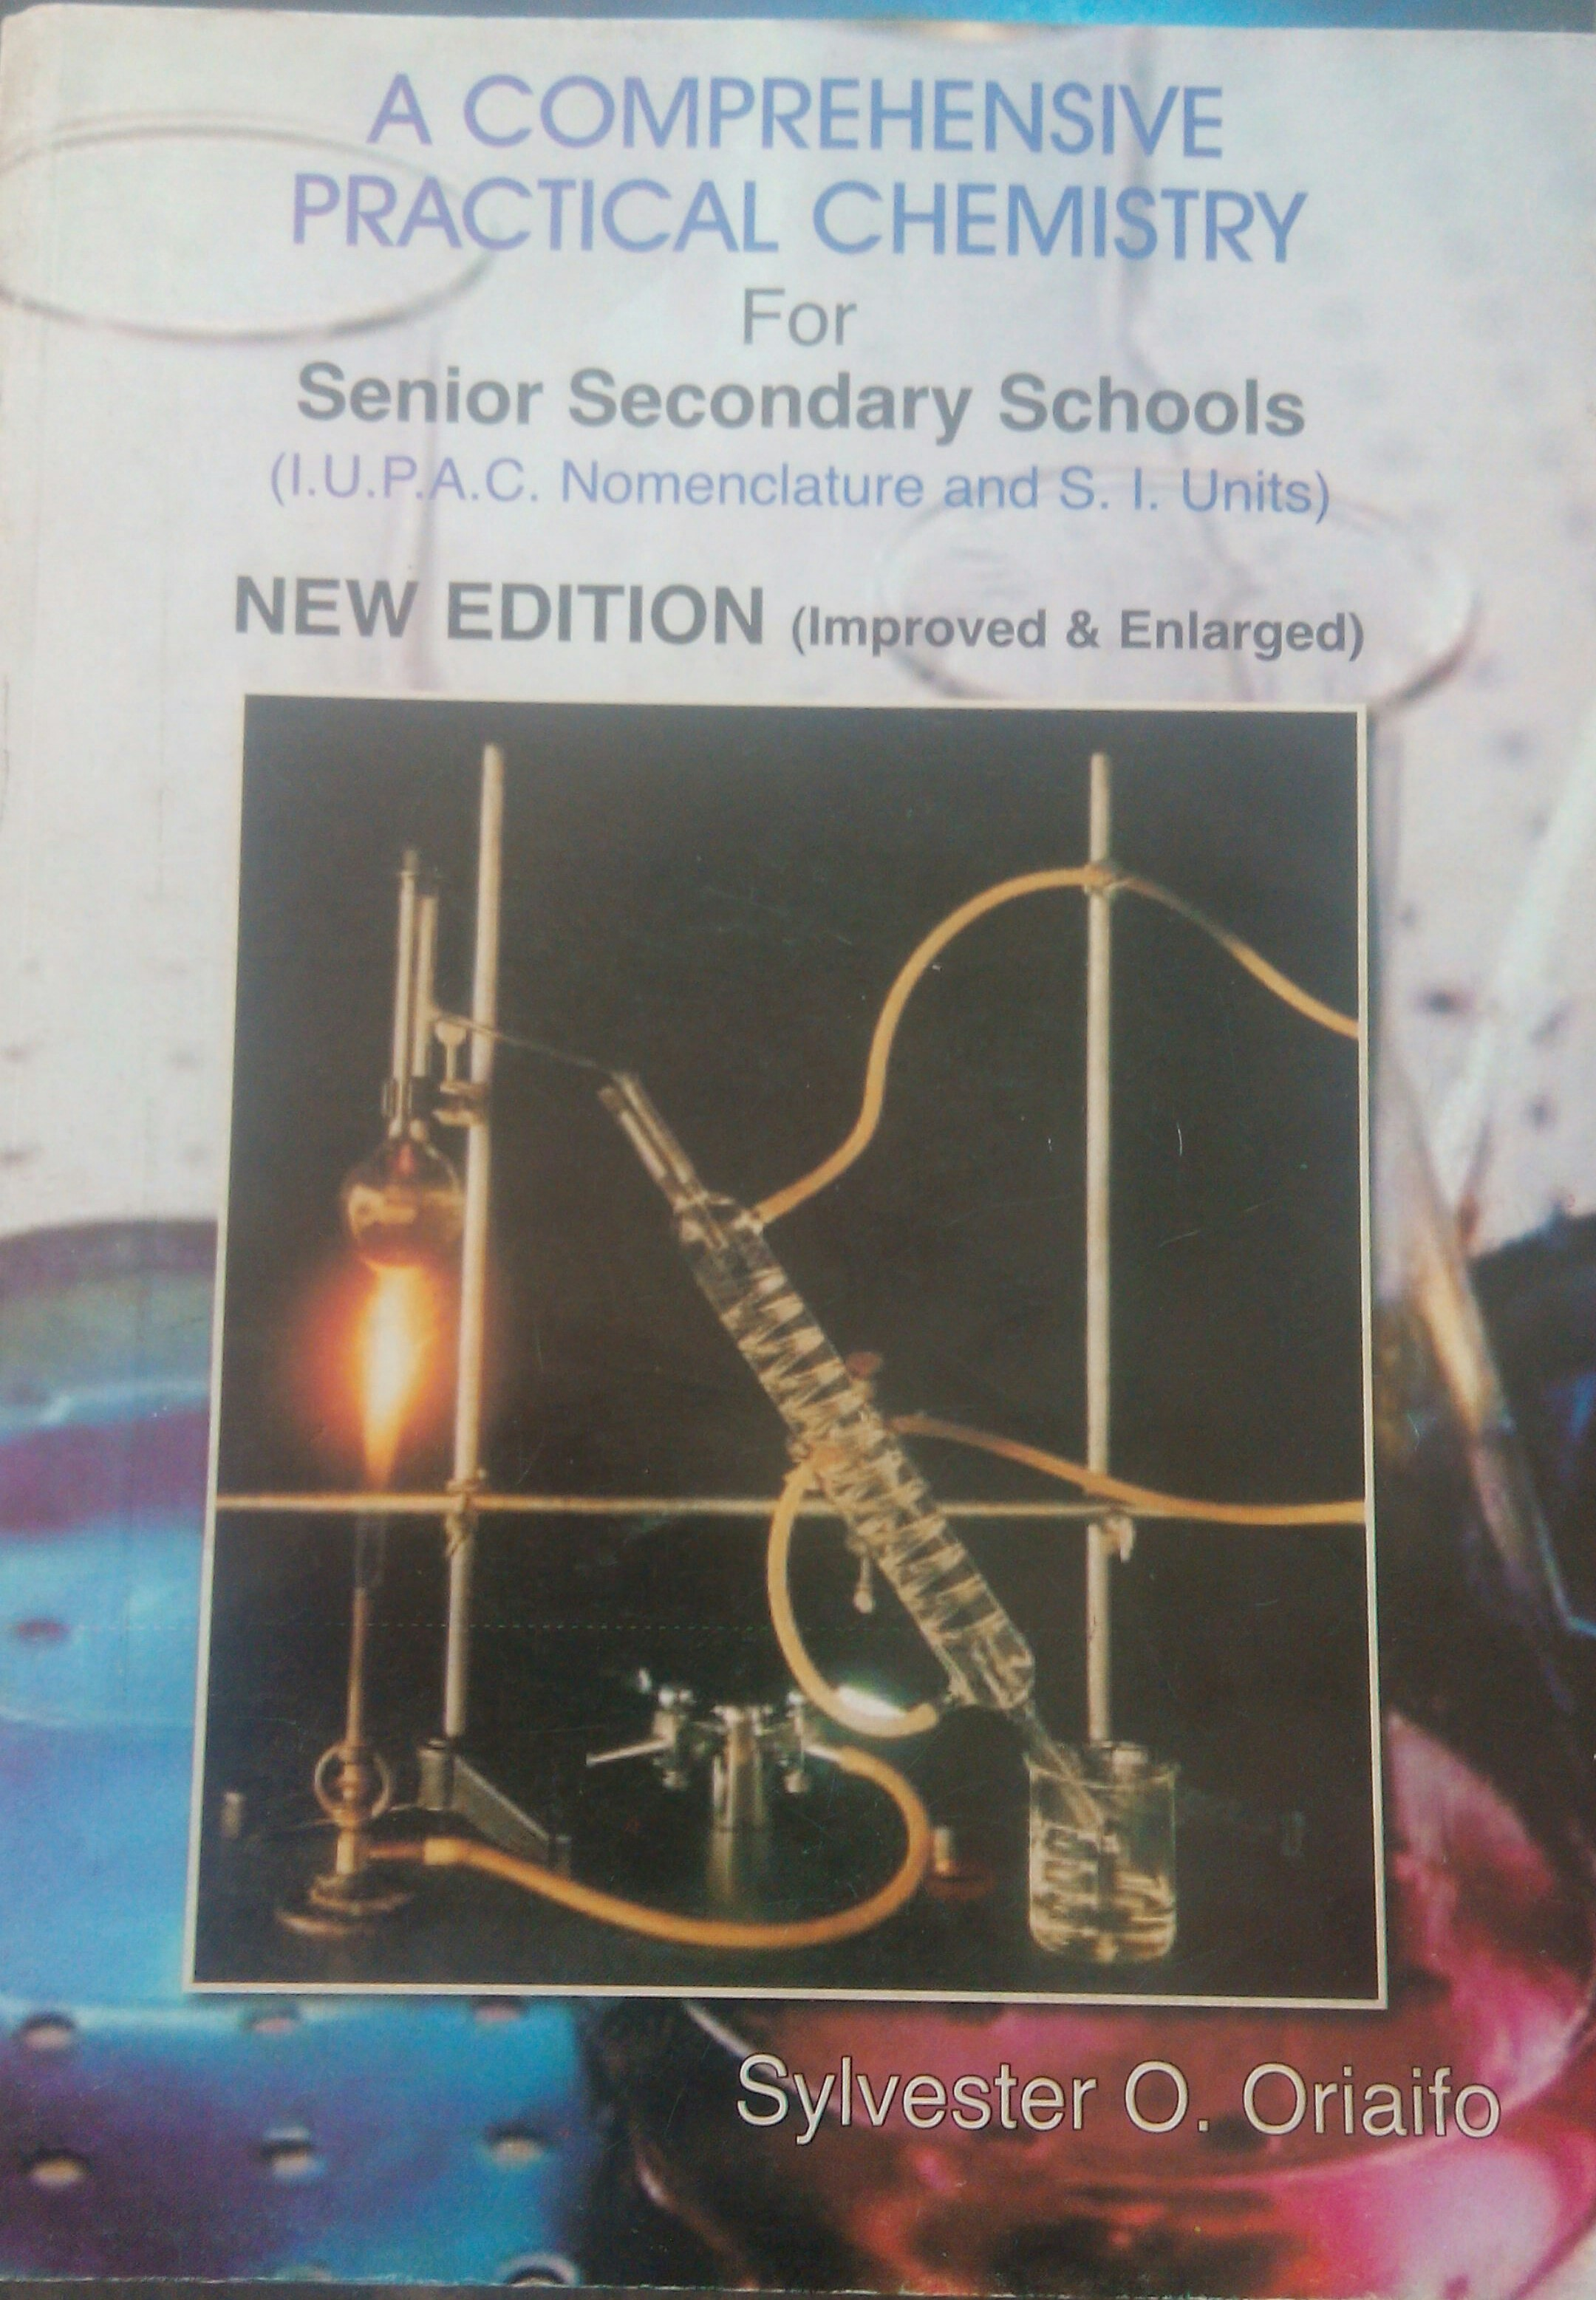 A Comprehensive Practical Chemistry for Senior Secondary Schools